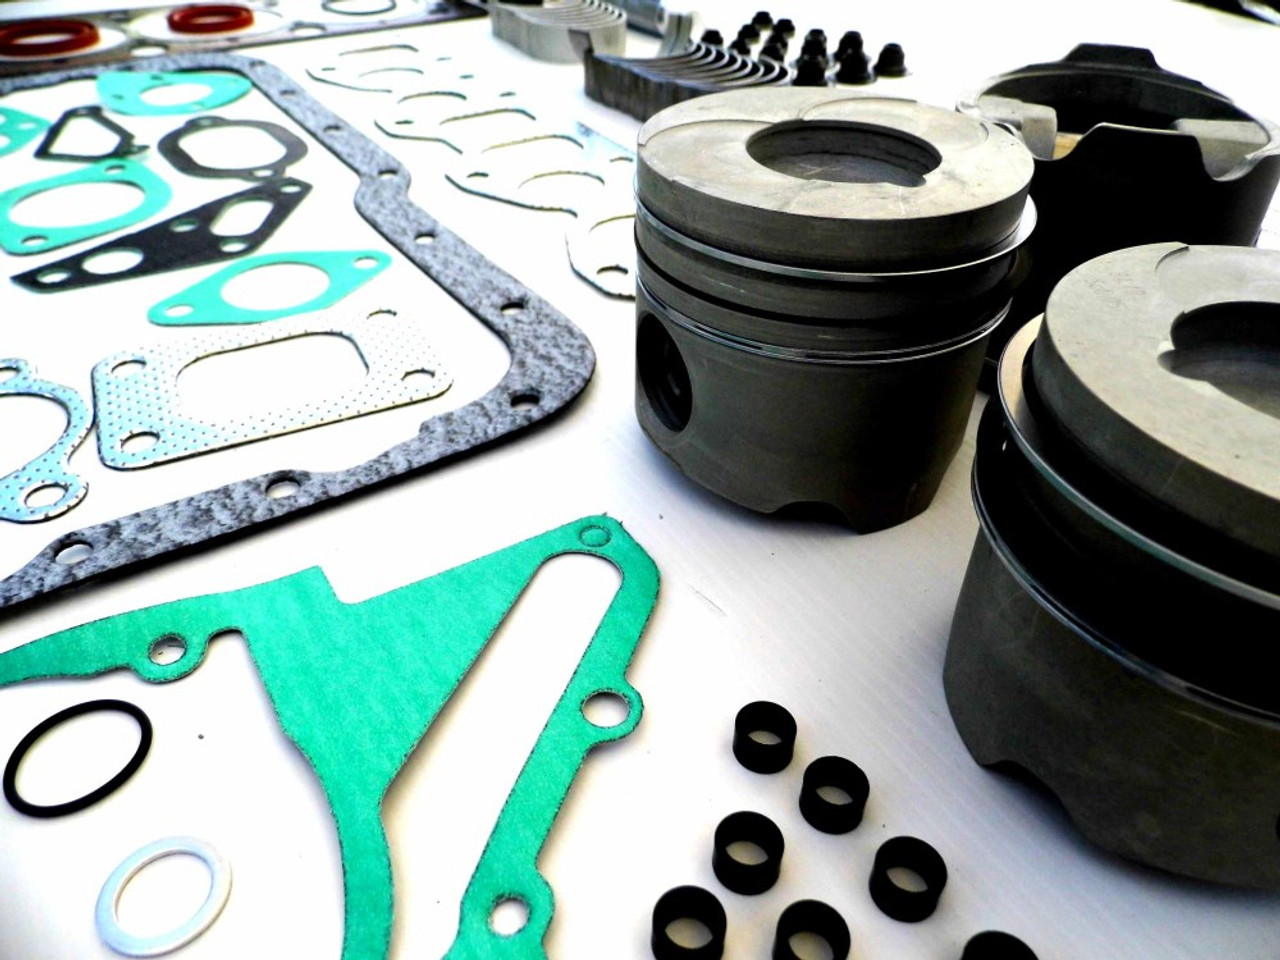 Perkins Prima M80T Engine overhaul kit from parts4engines.com